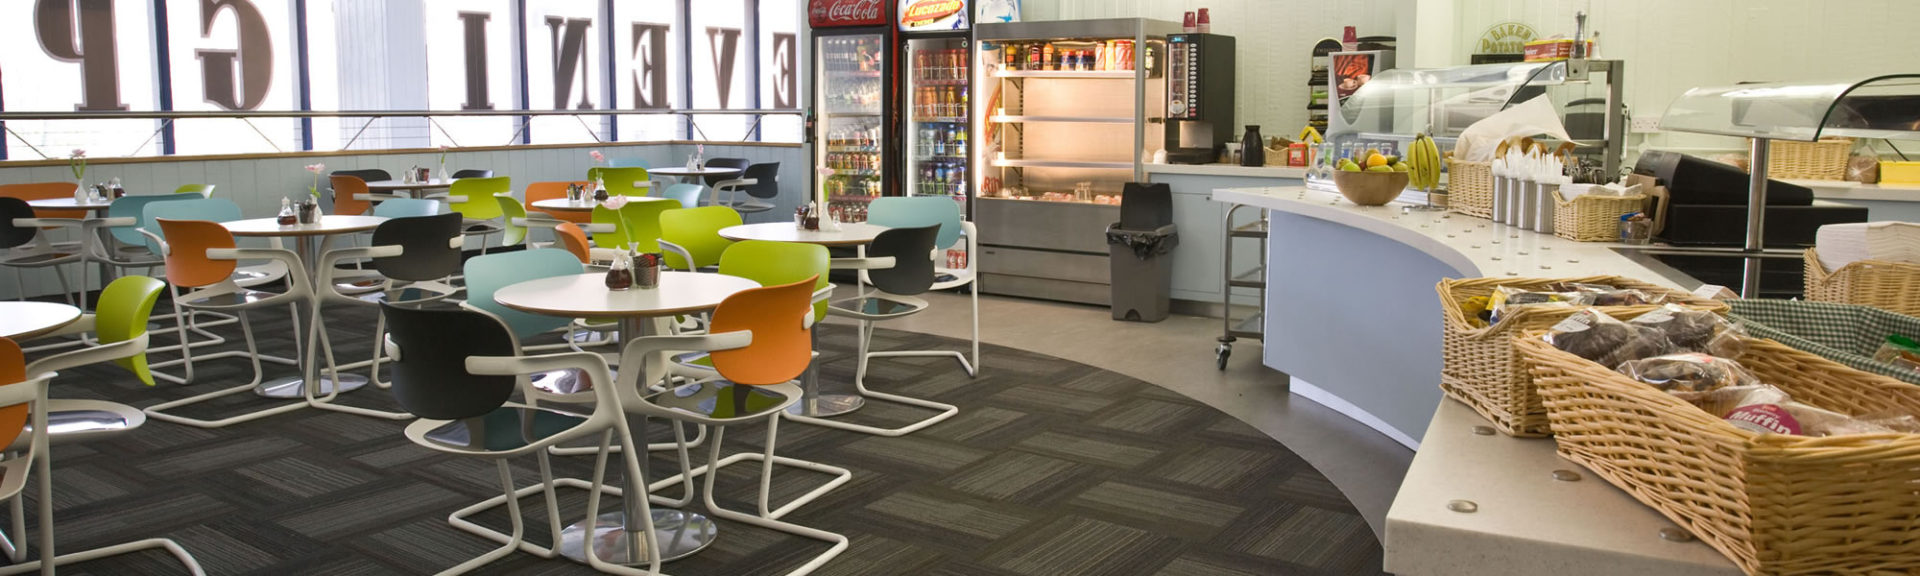 Commercial Kitchen Furniture Banner